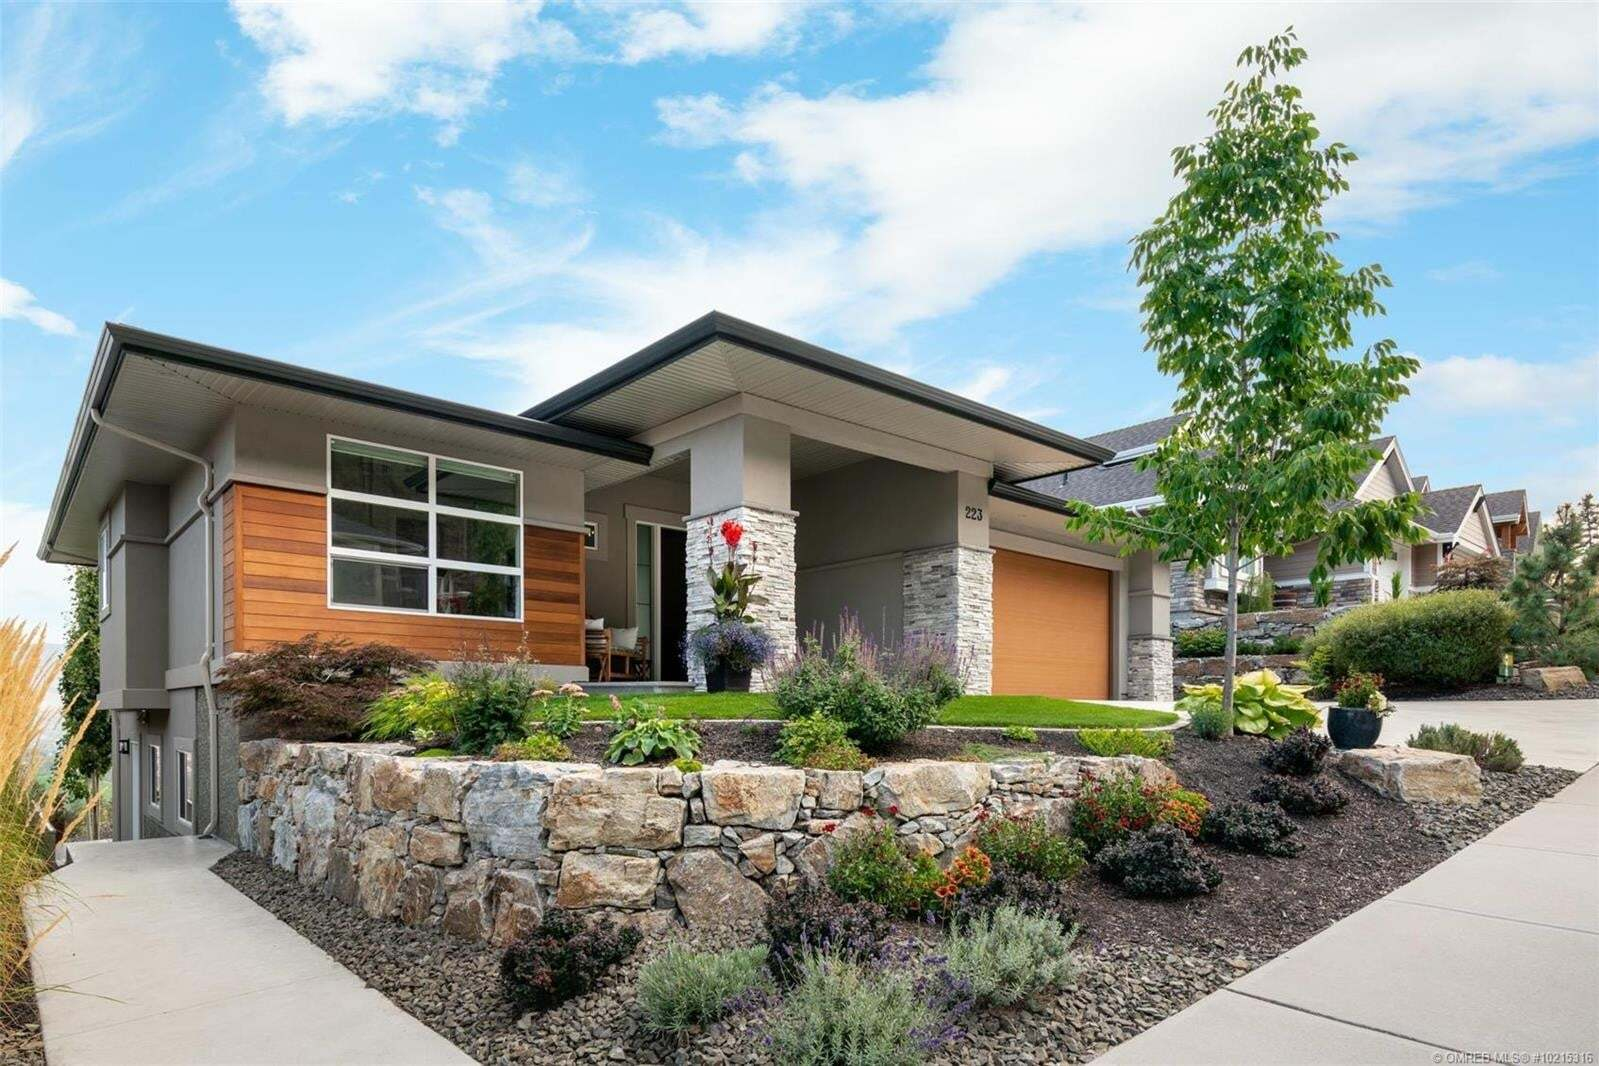 House for sale at 223 Upper Canyon Dr North Kelowna British Columbia - MLS: 10215316